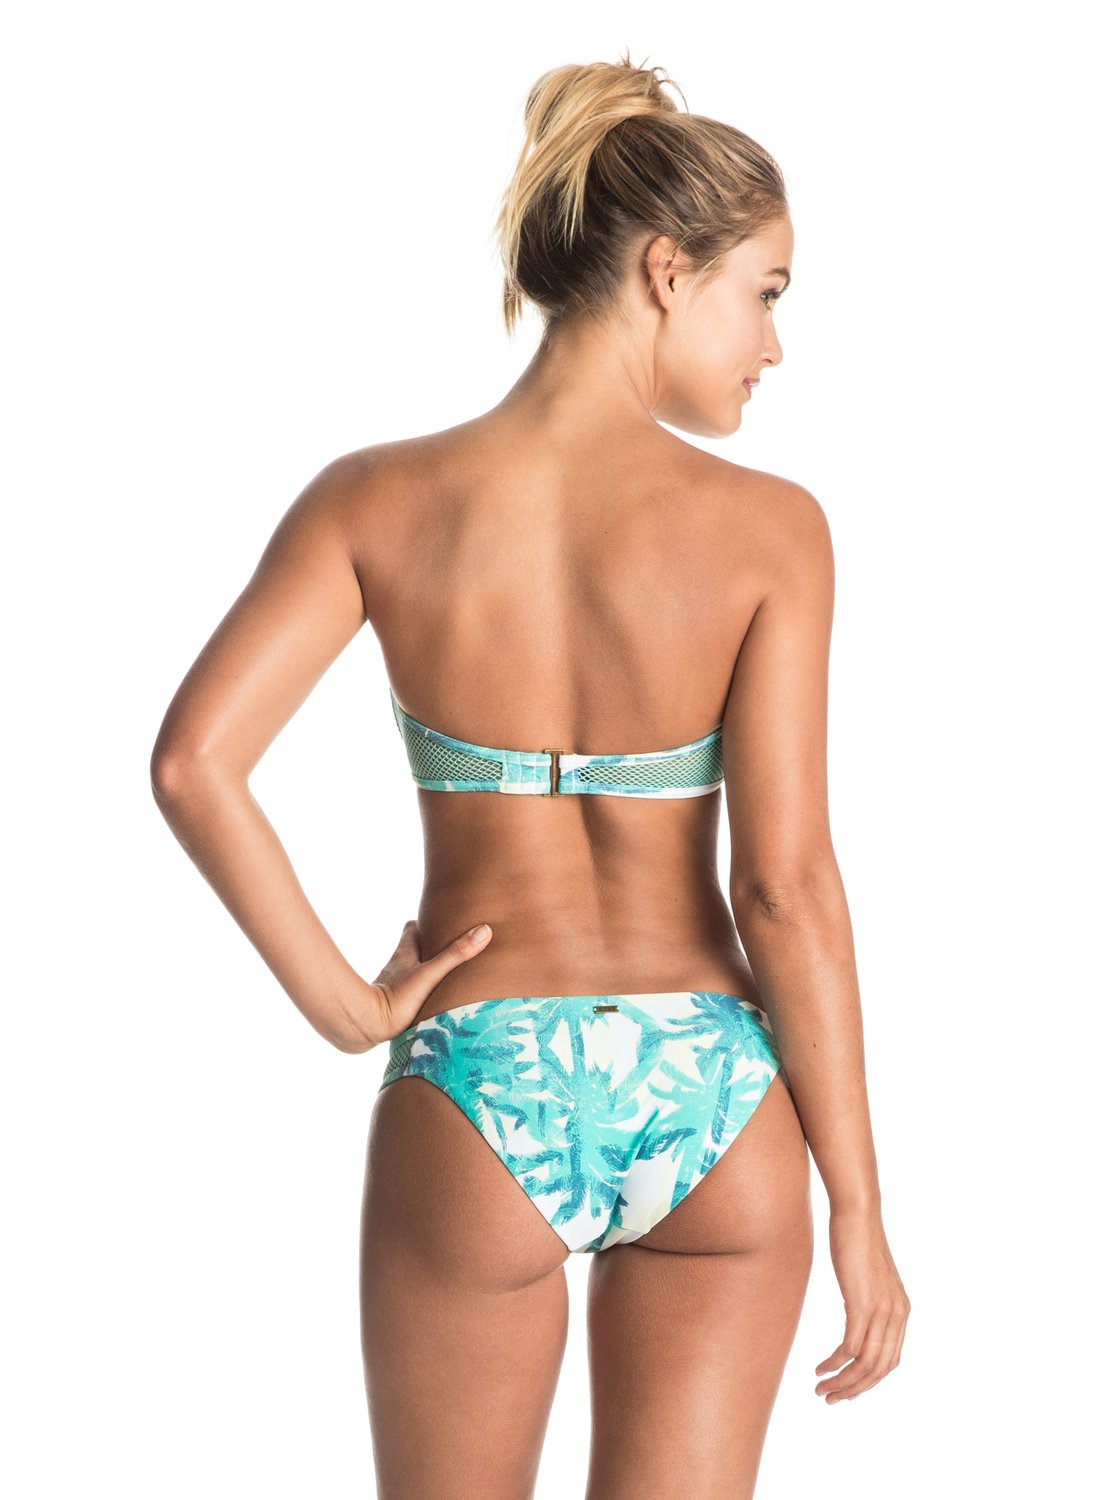 Swimwear prices are provided by the merchants and MyShopping assumes no responsibility for accuracy of price information. Product specifications are obtained from merchants or third parties and although we make every effort to present accurate information, MyShopping is not responsible for inaccuracies.